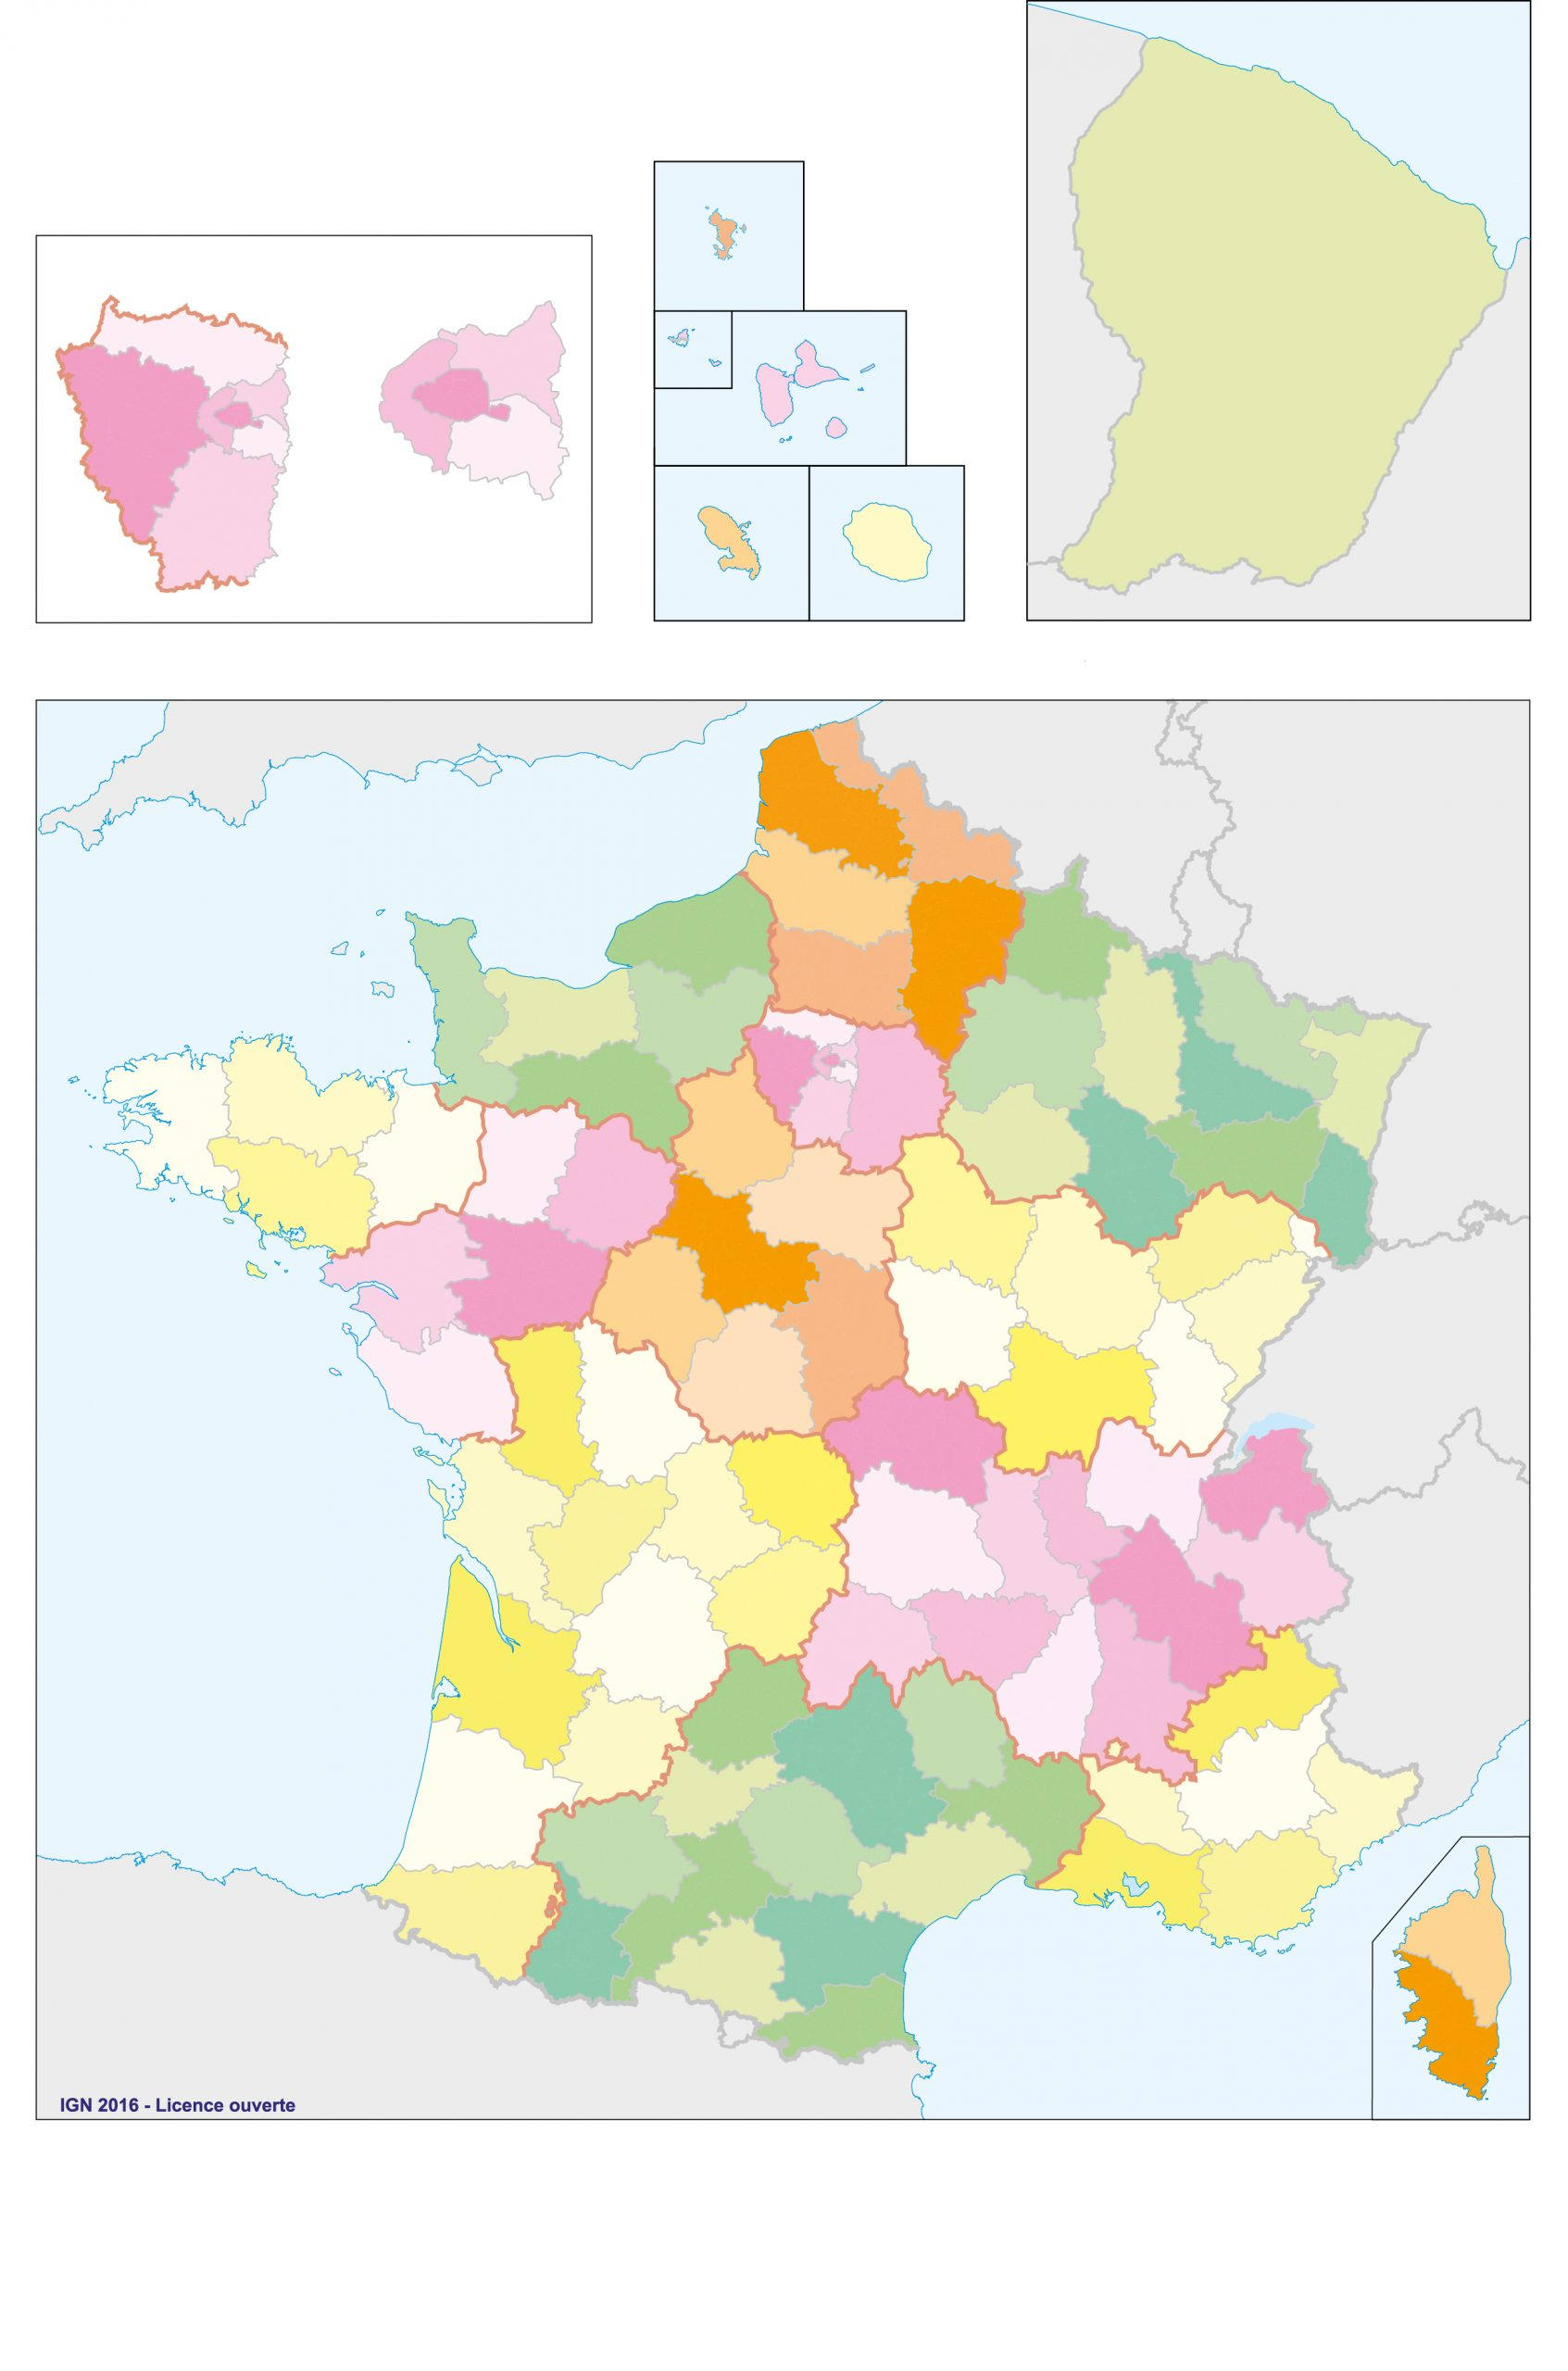 Fonds De Cartes | Éducation encequiconcerne Carte De France Des Départements